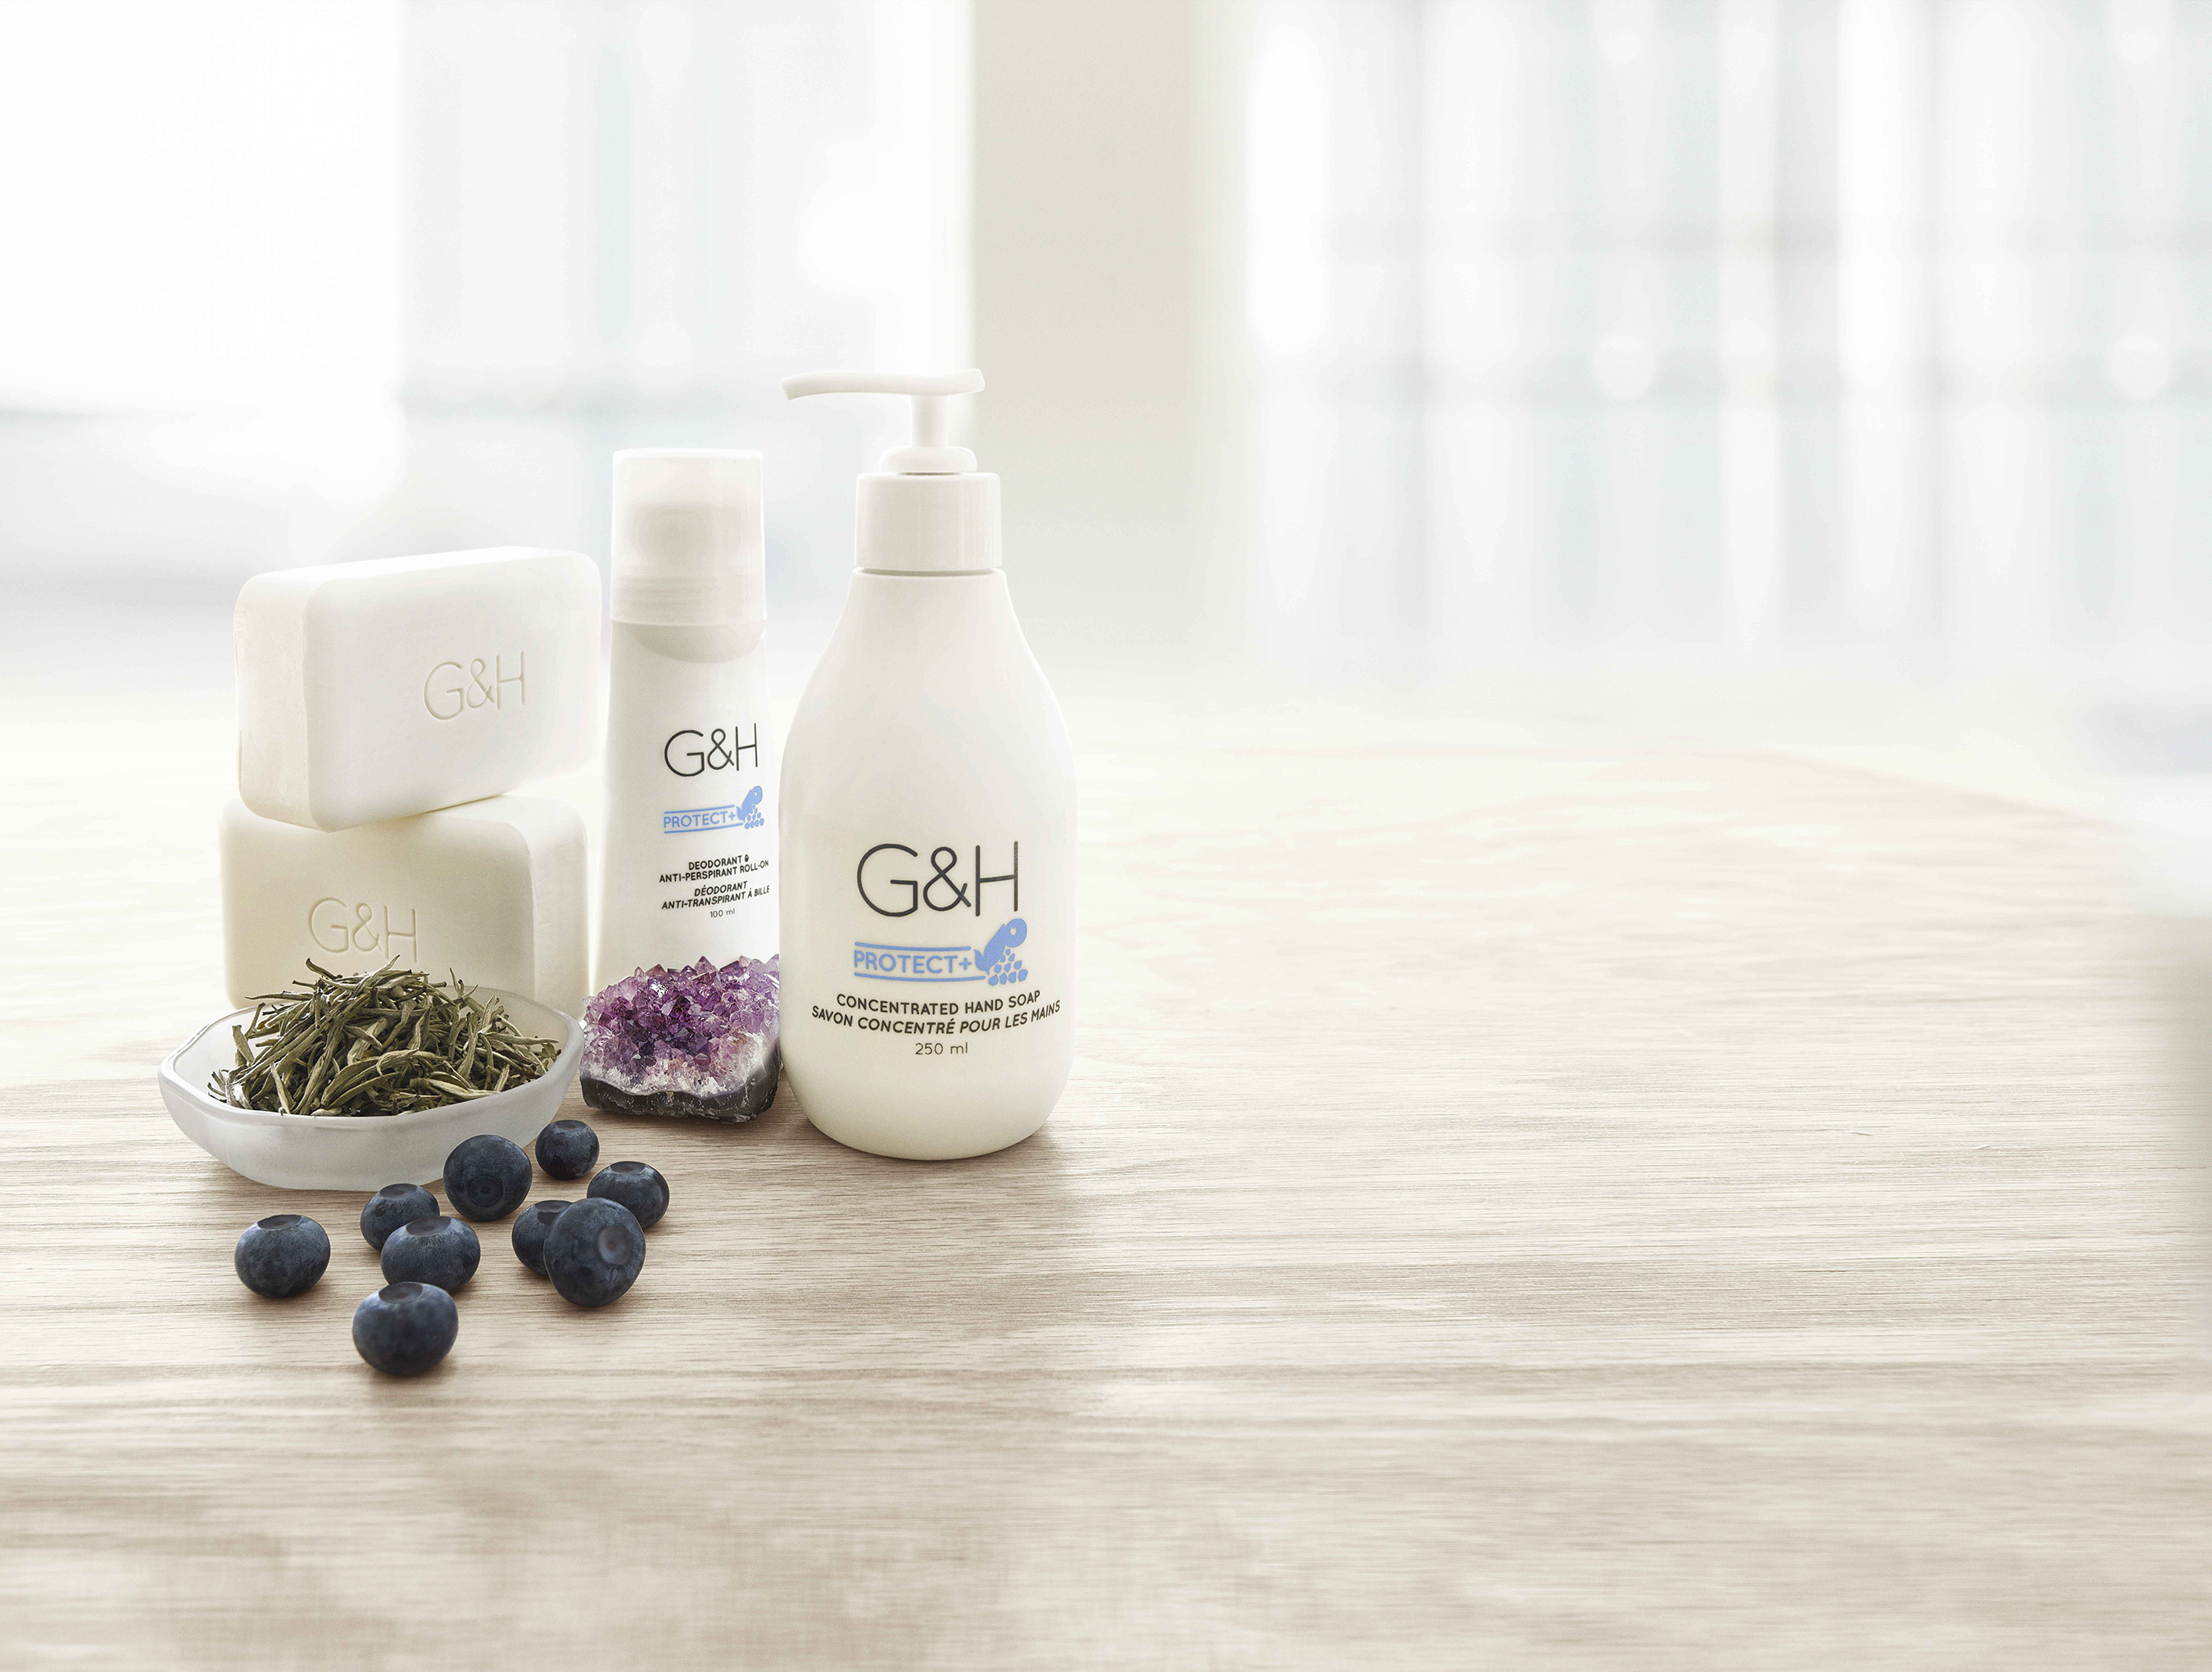 Amway Combines The Best Of Nature And Science With The Introduction Of G&H, Effective And Gentle Body Care For The Entire Family